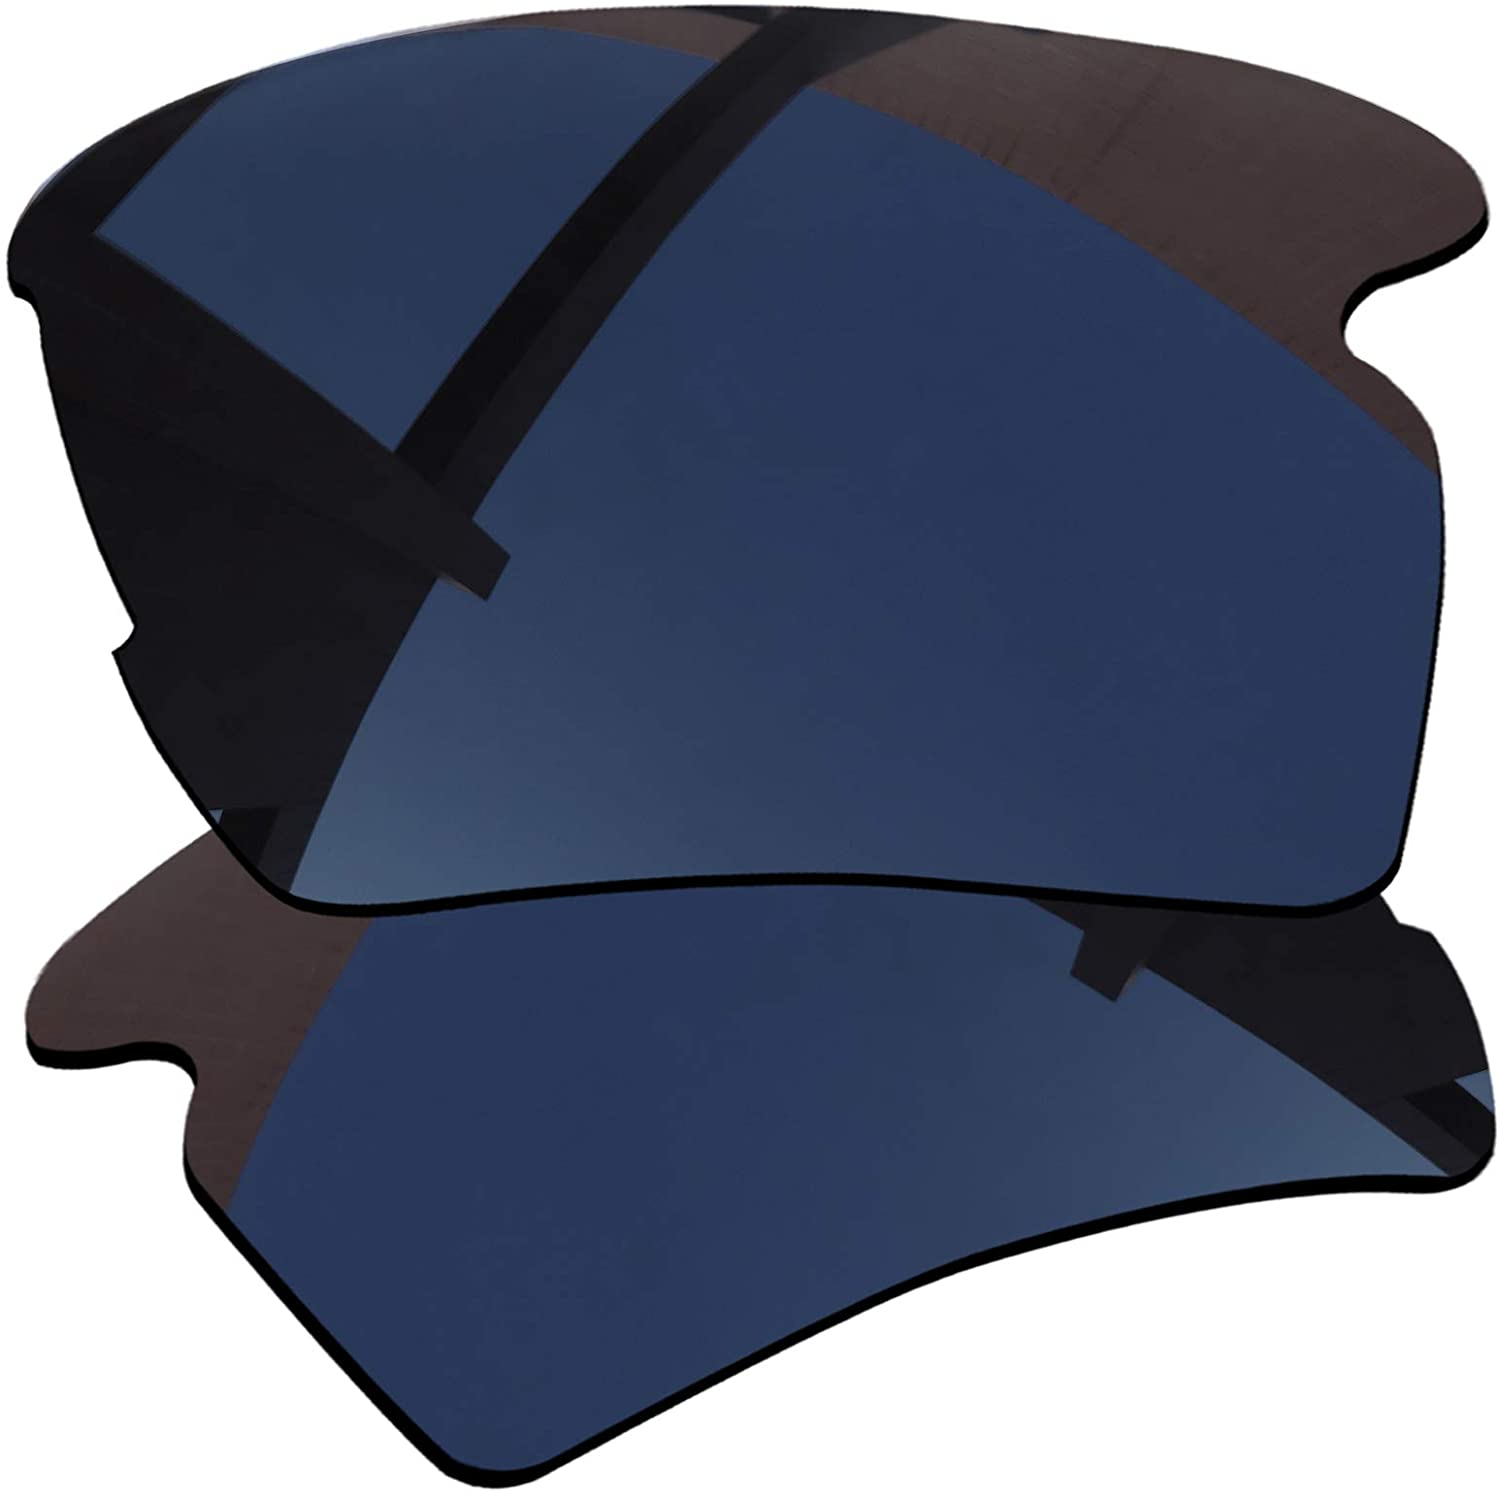 Volcano Polarized Lenses Replacement for Oakley Flak Series Sunglasses - Options